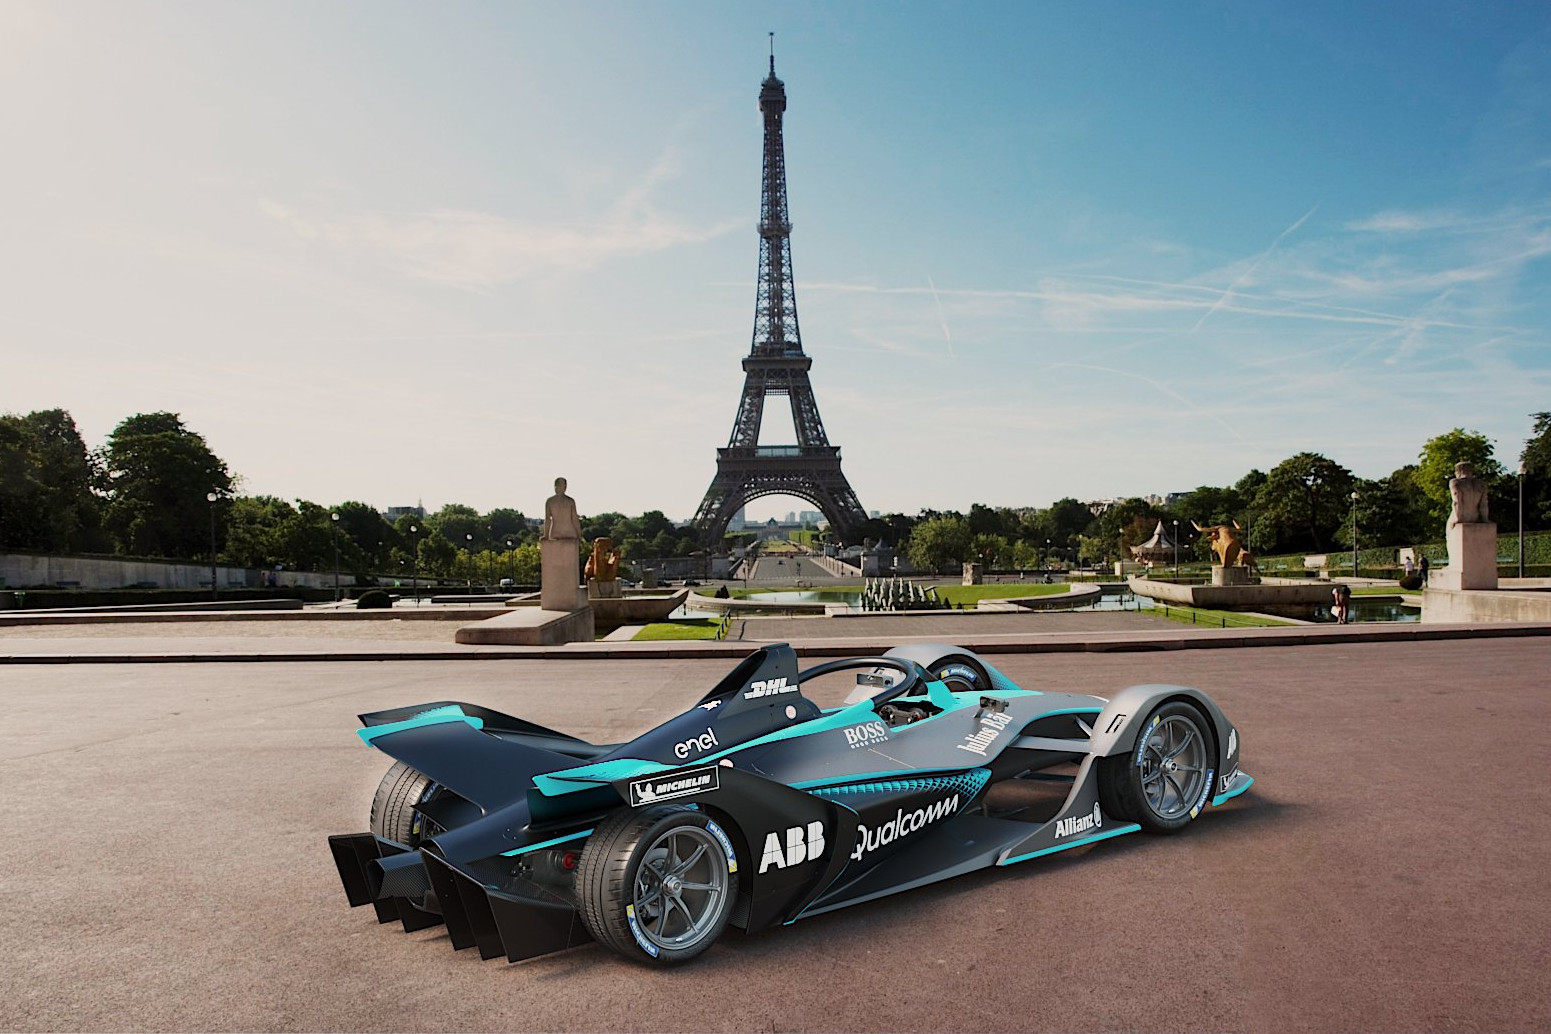 Formula-E-Gen-2-Car-Paris-Tour-Eiffel